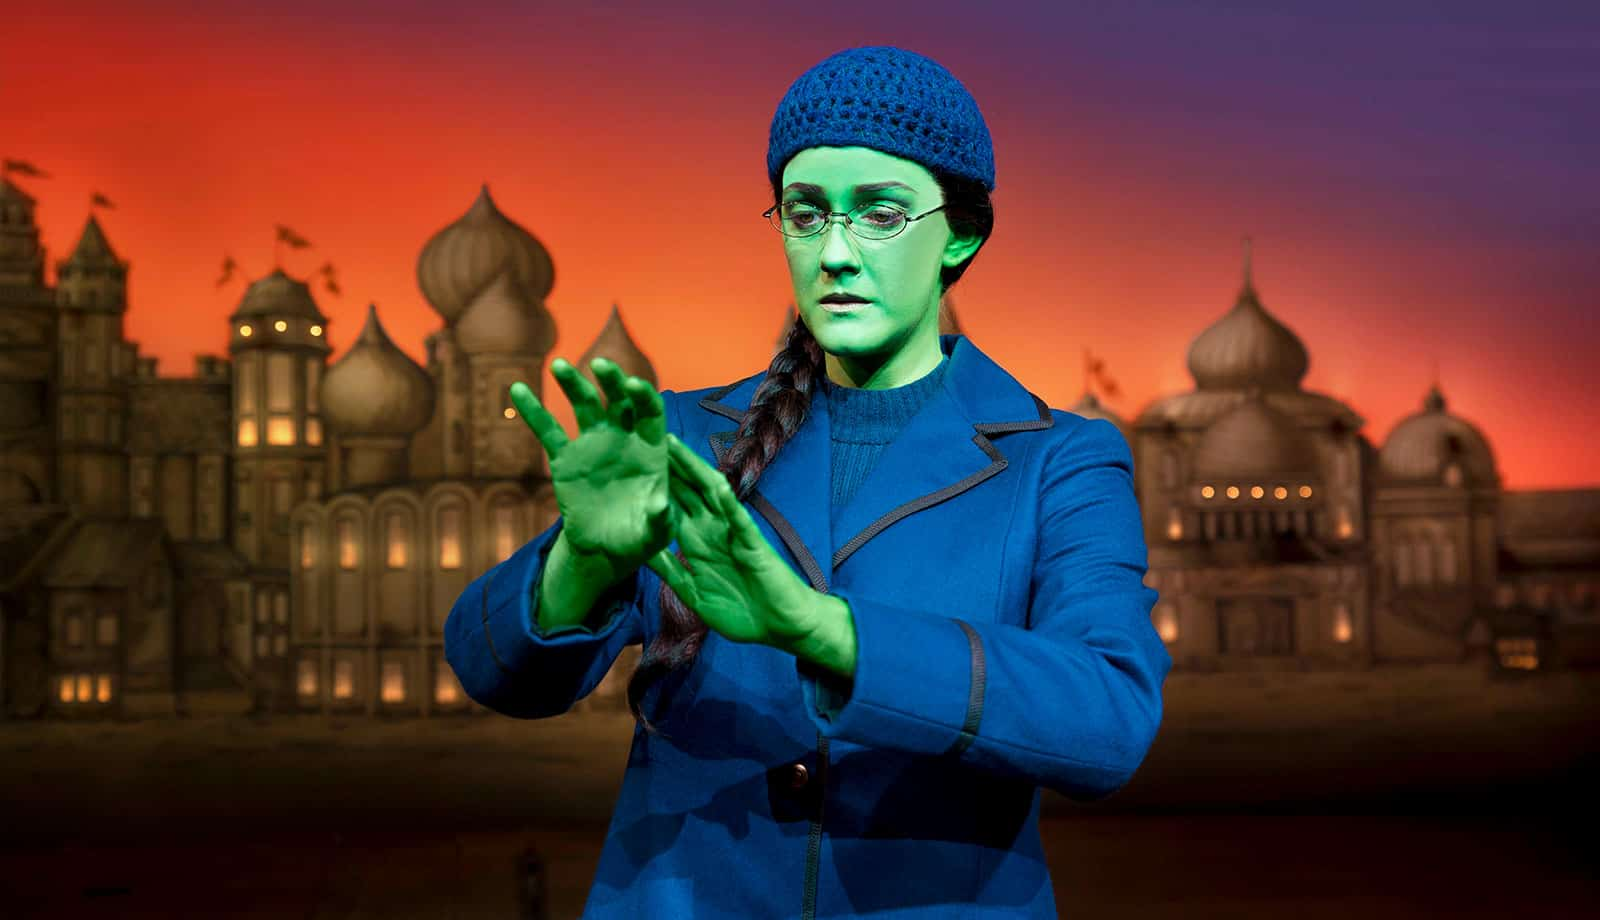 Wicked the Musical | The story behind the Wicked Witch